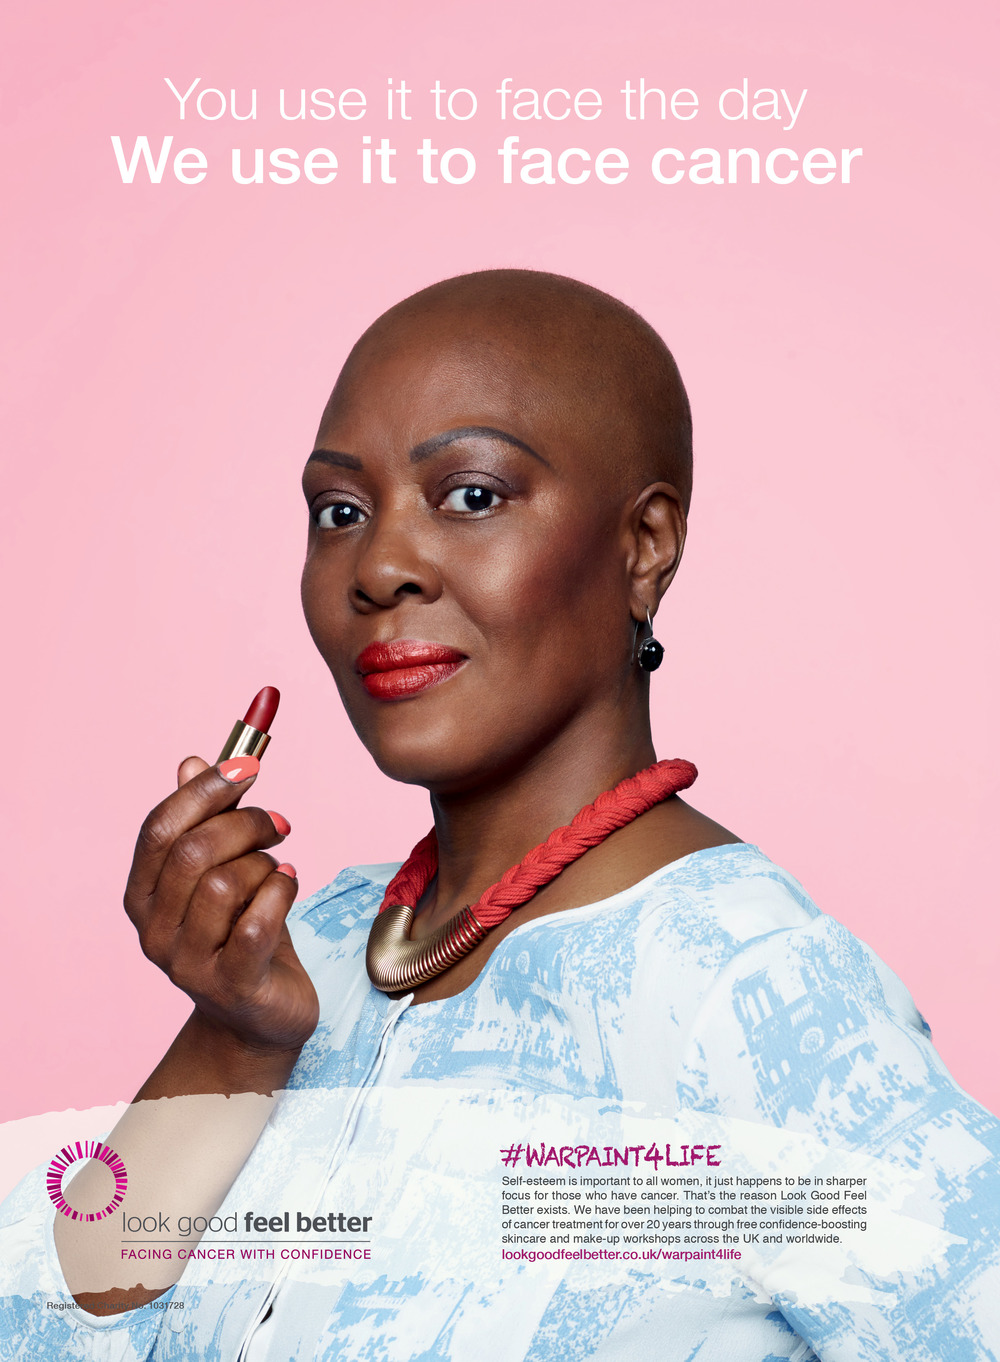 Empowerment Through Beauty - Fighting Cancer with Positive Energy - Look Good Feel Better - makeup during cancer treatment